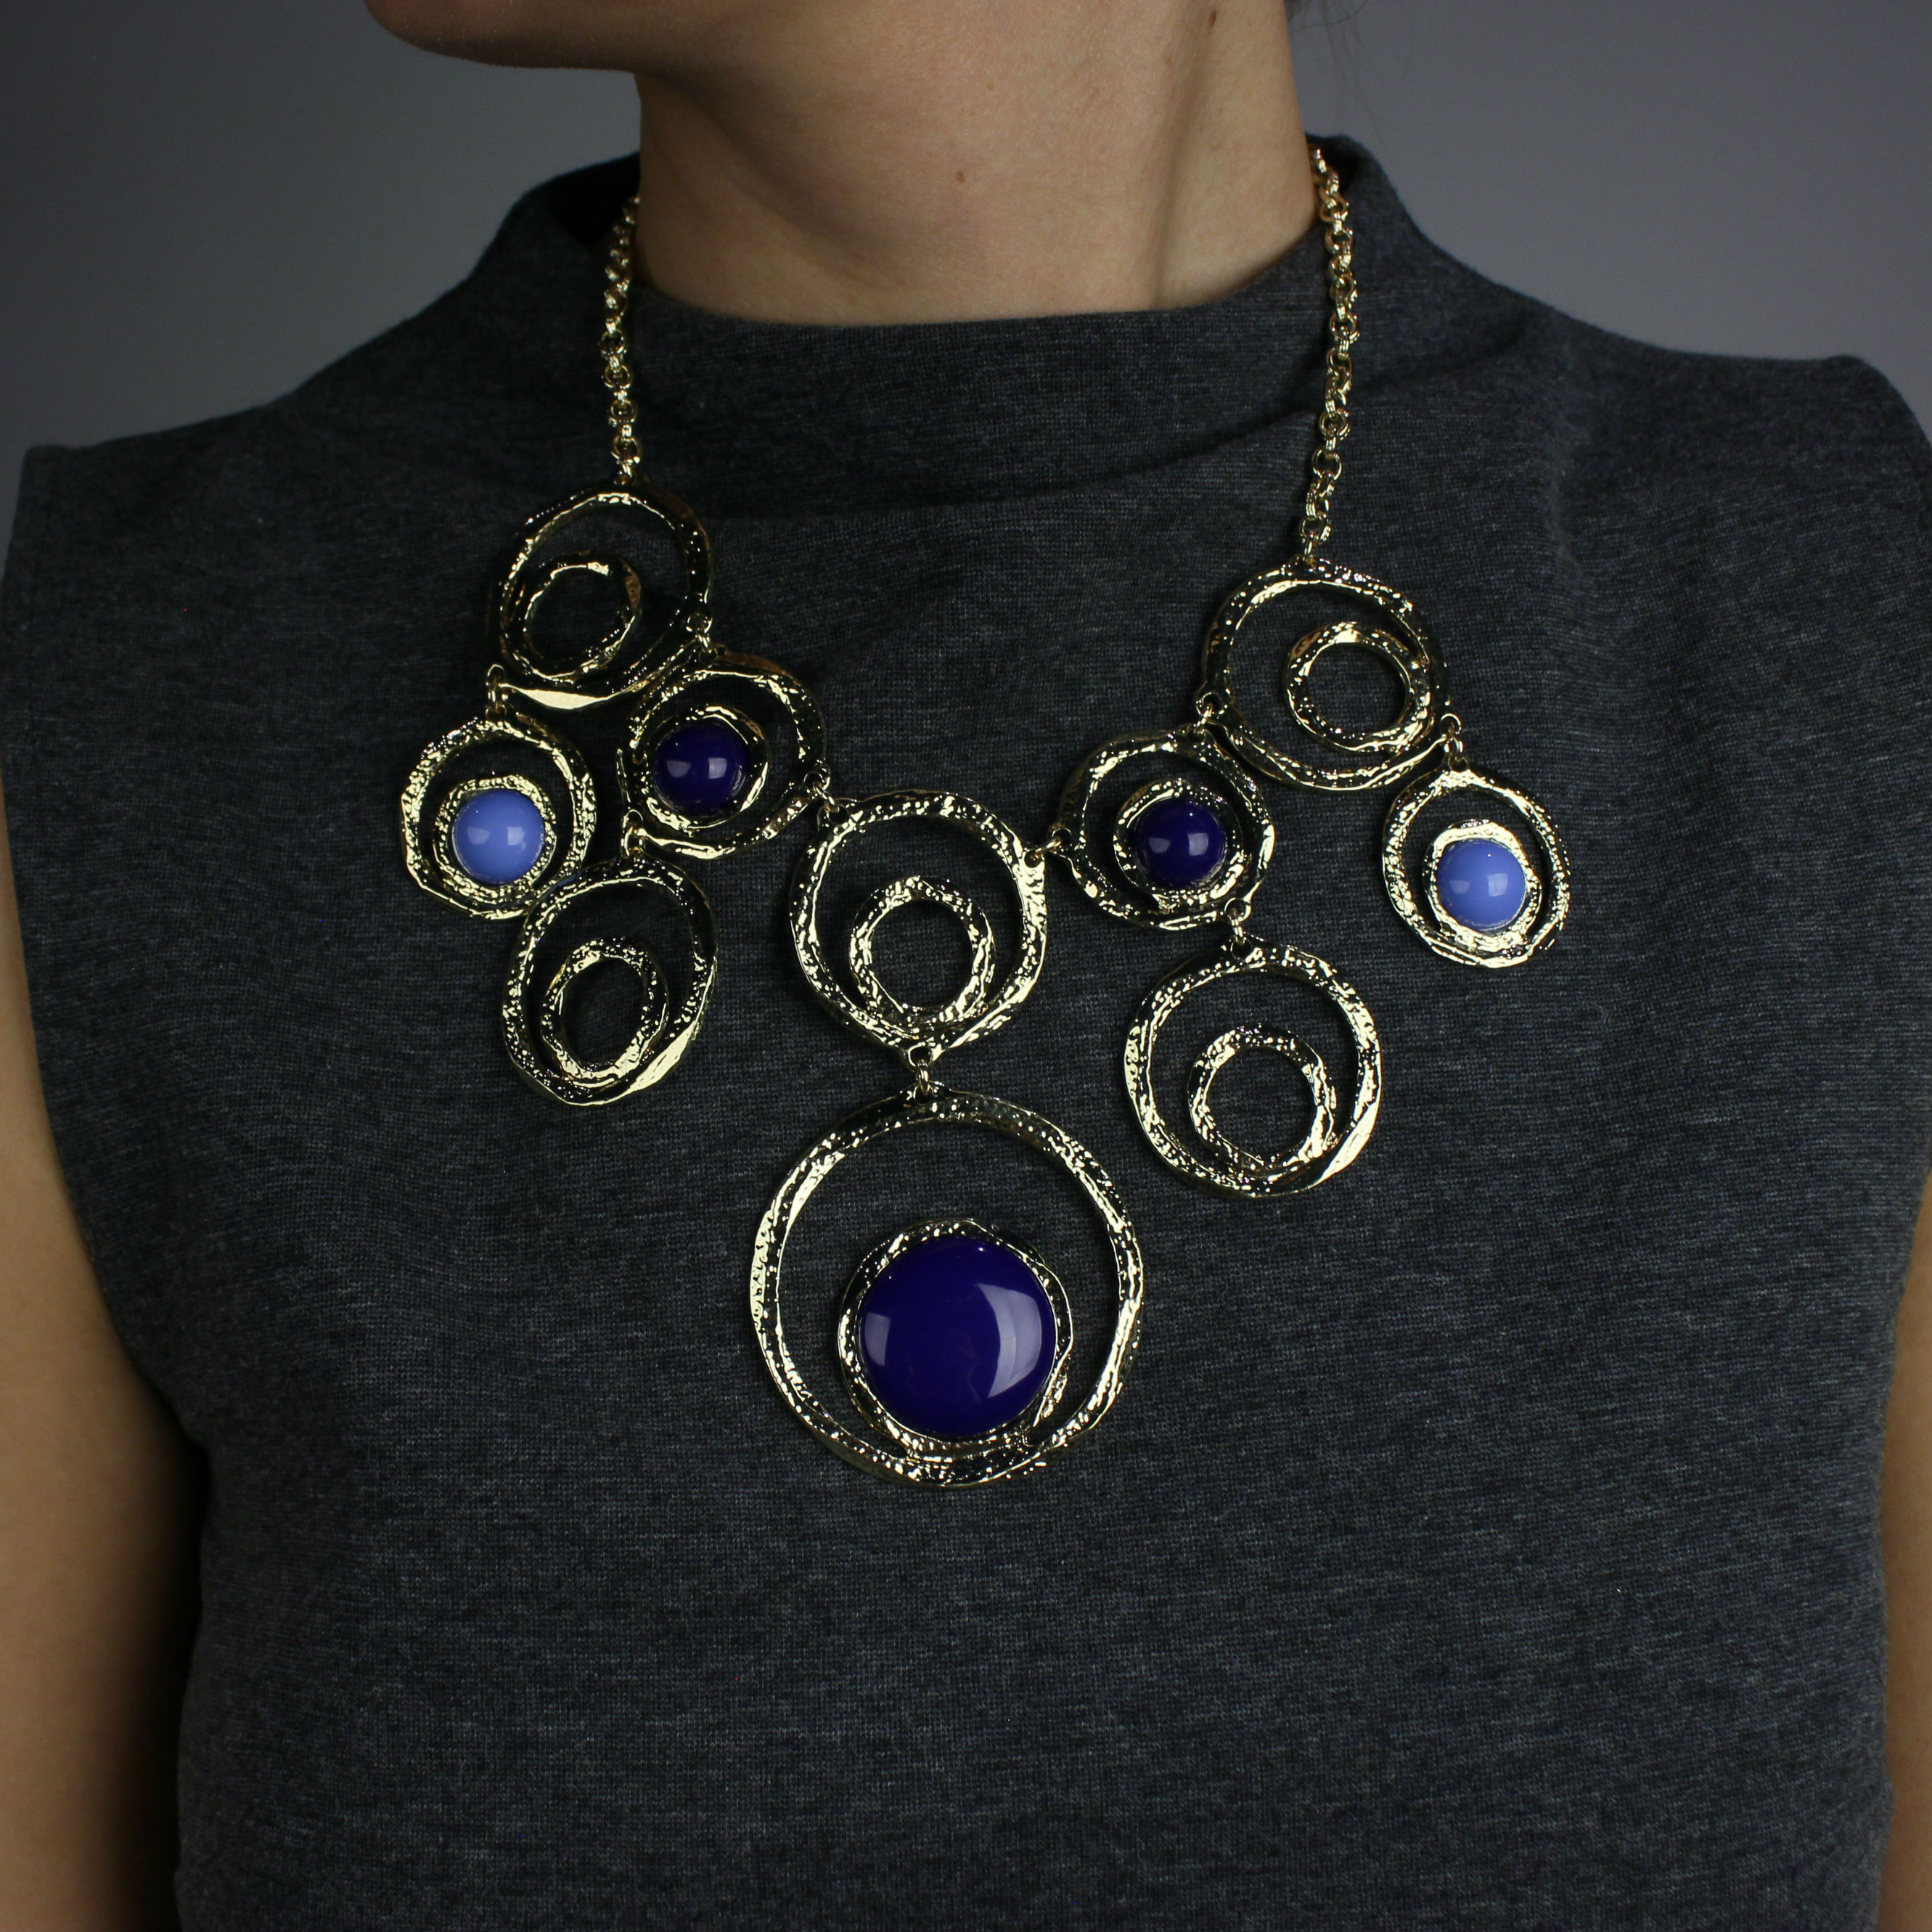 Textured Gold Plated Blue Resin Bib Necklace